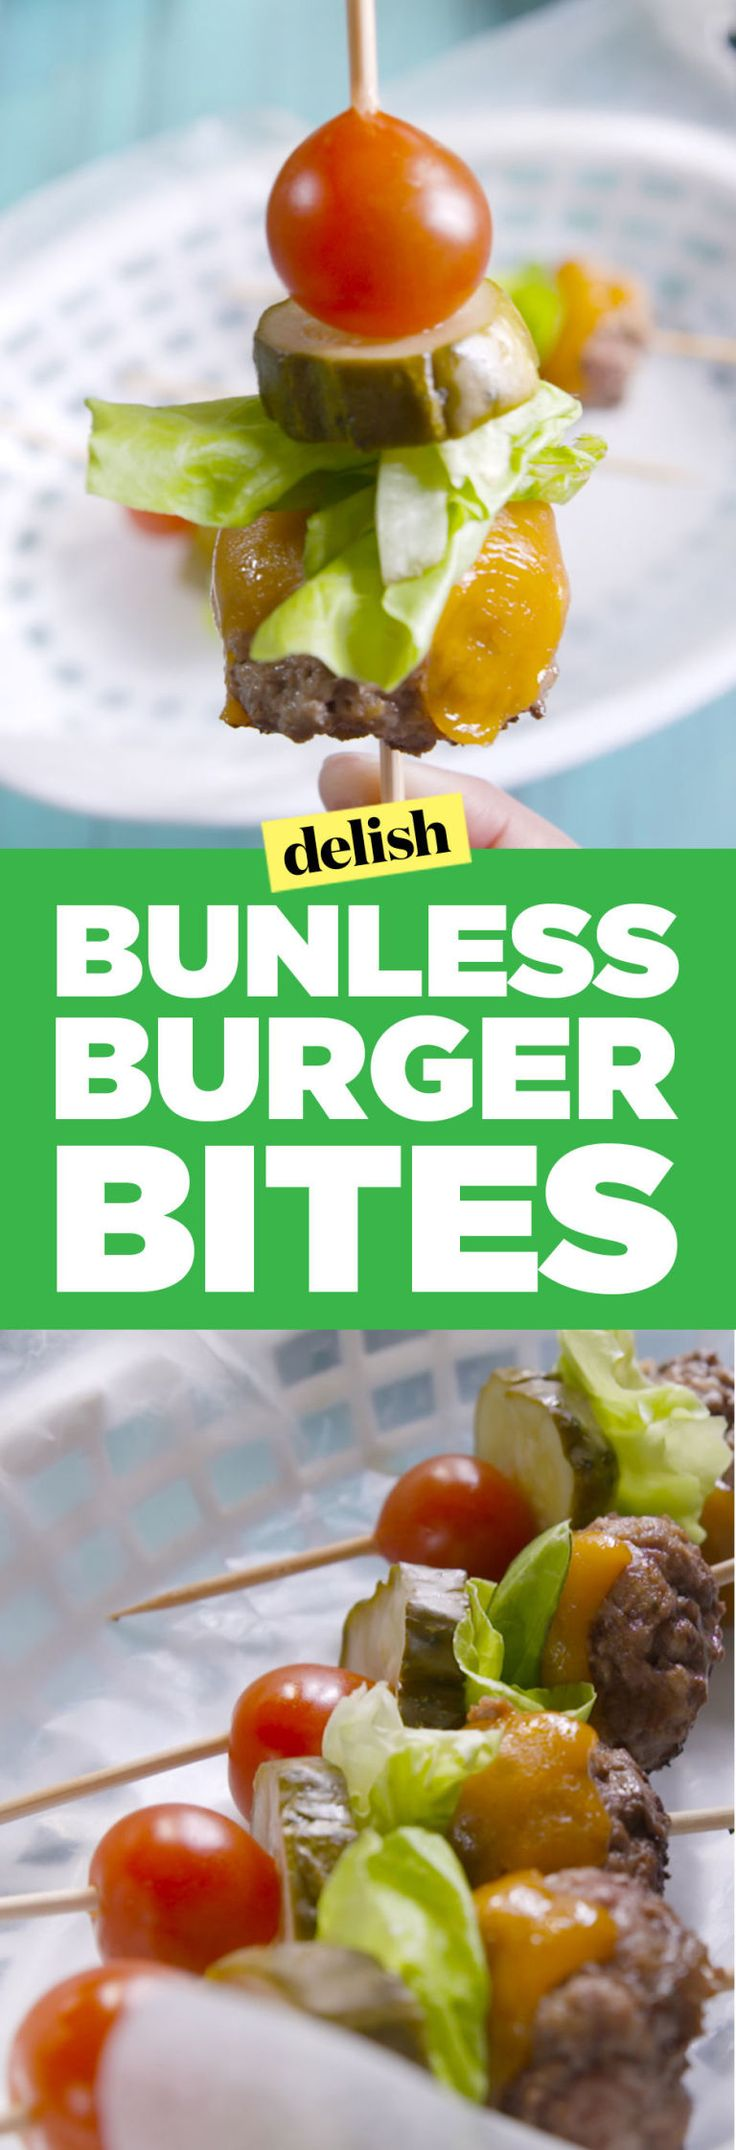 Bunless Burger Bites I The cookout appetizer you never knew you needed I Delish